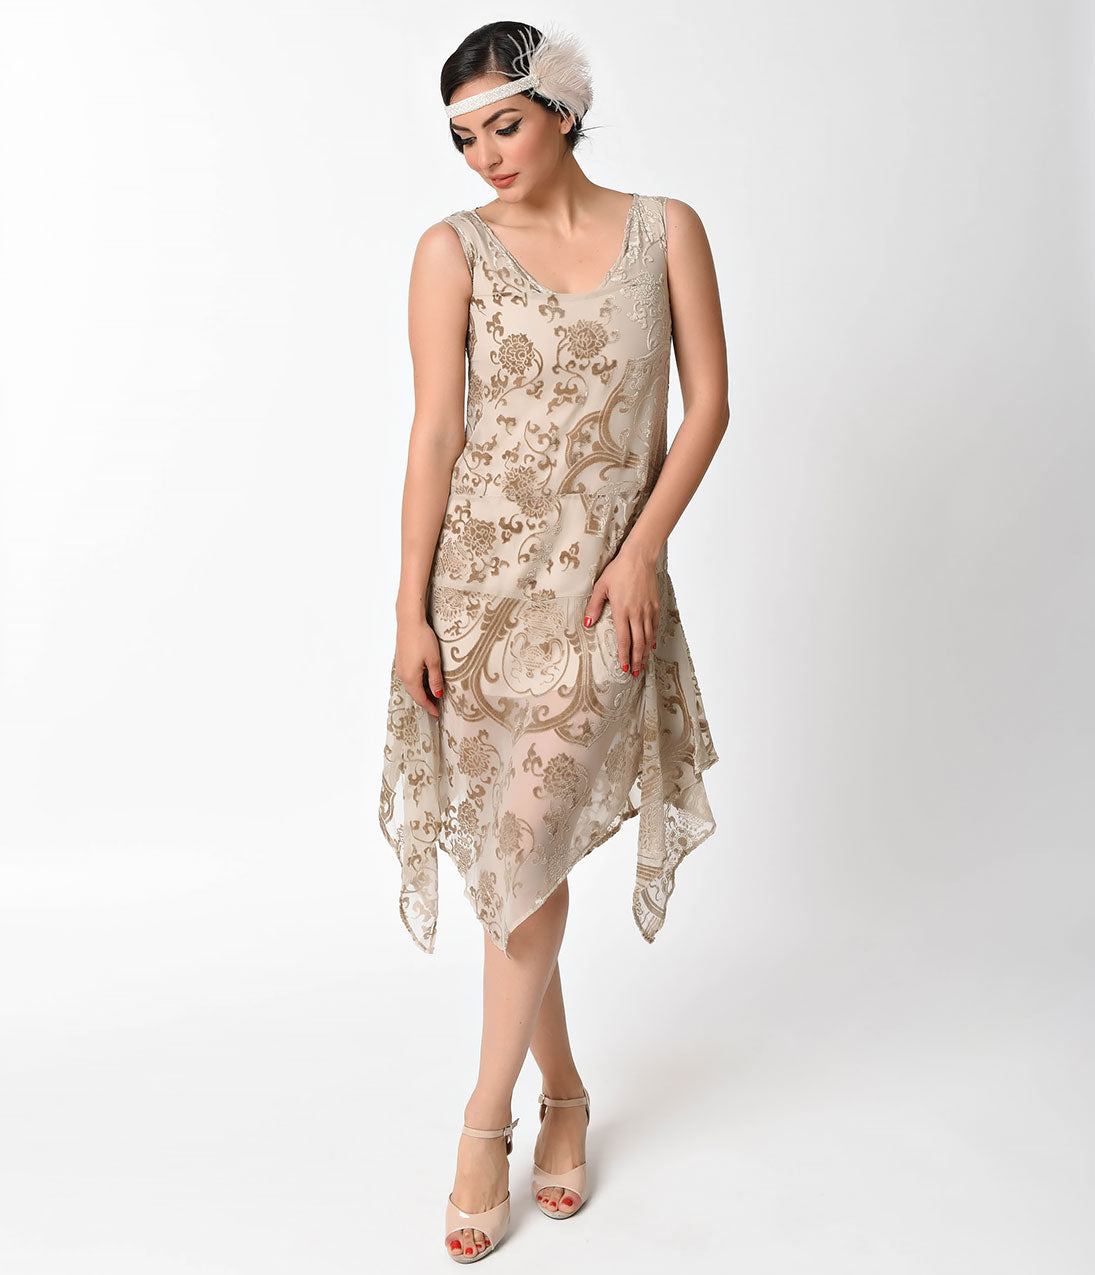 Vintage Inspired Wedding Dress | Vintage Style Wedding Dresses 1920s Style Champagne Burnout Velvet Flapper Dress $90.00 AT vintagedancer.com